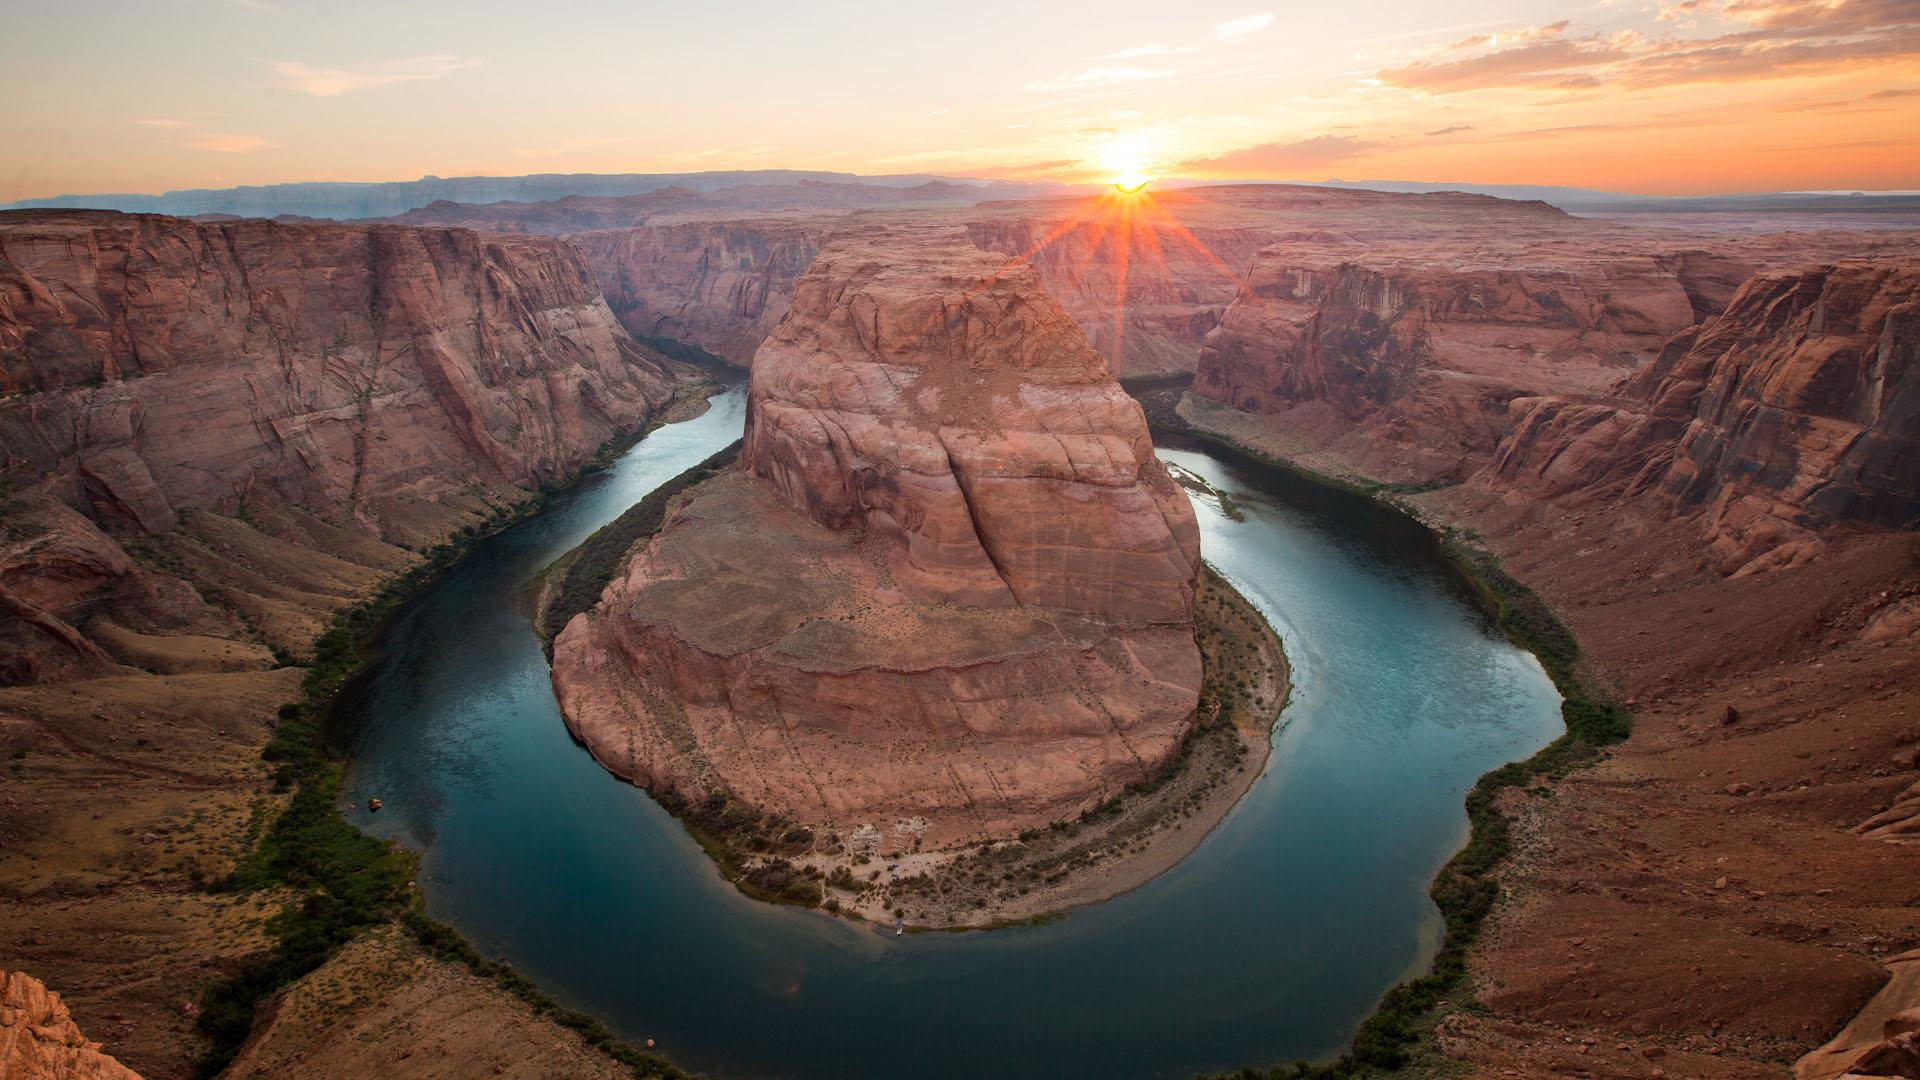 The Grand Circle is the ultimate US Southwest road trip